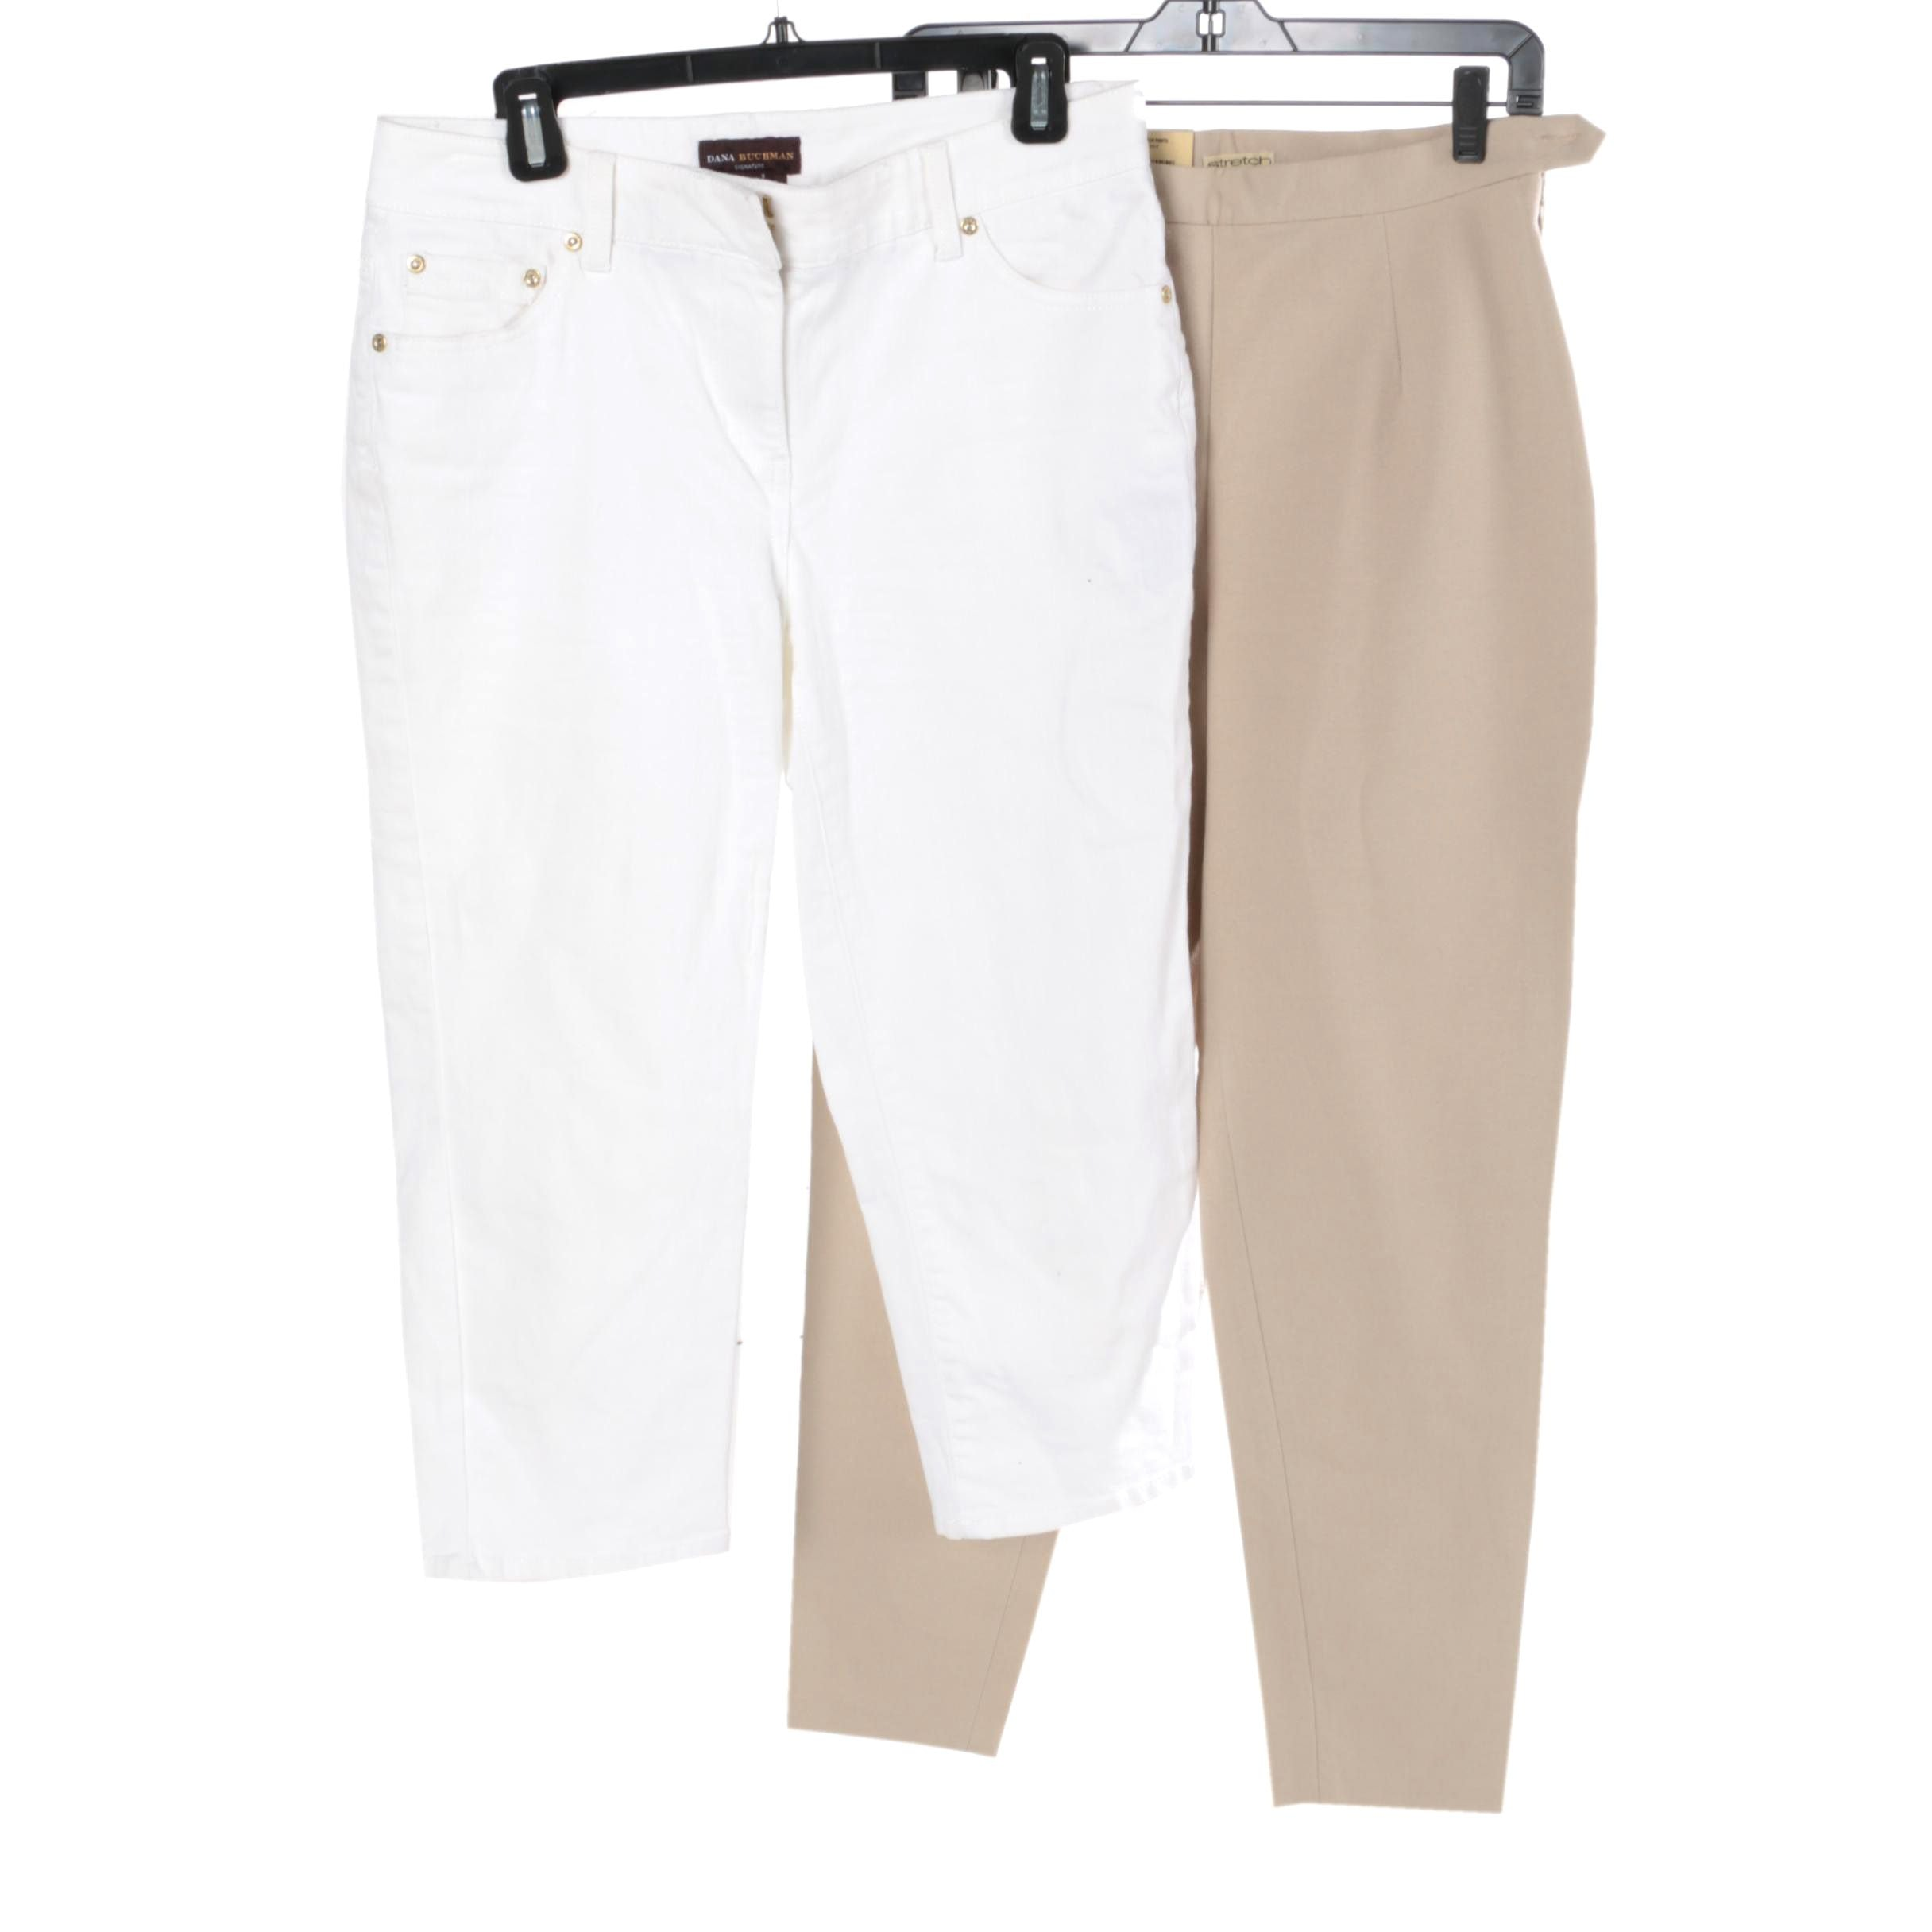 Woman's Dana Buchman and Gap Stretch Pants